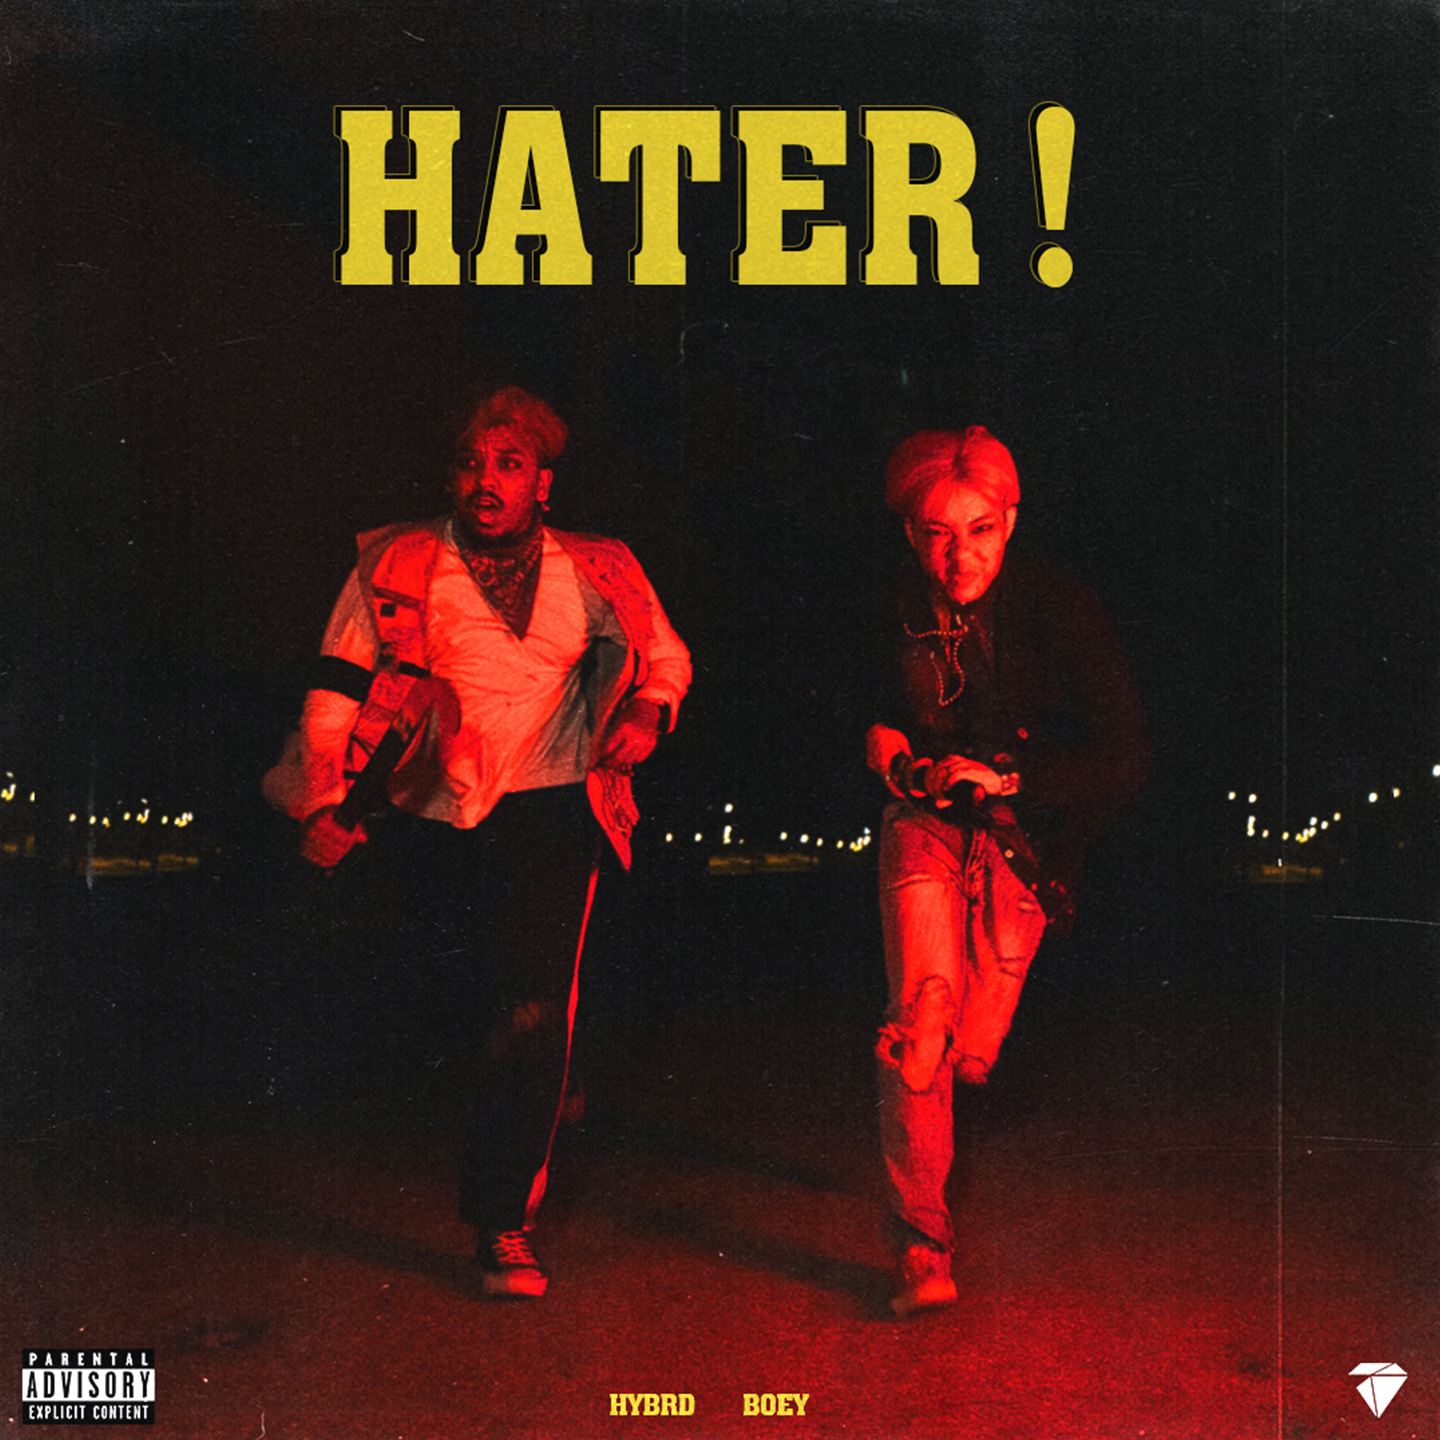 Hater! single   cover art %281440x1440%29